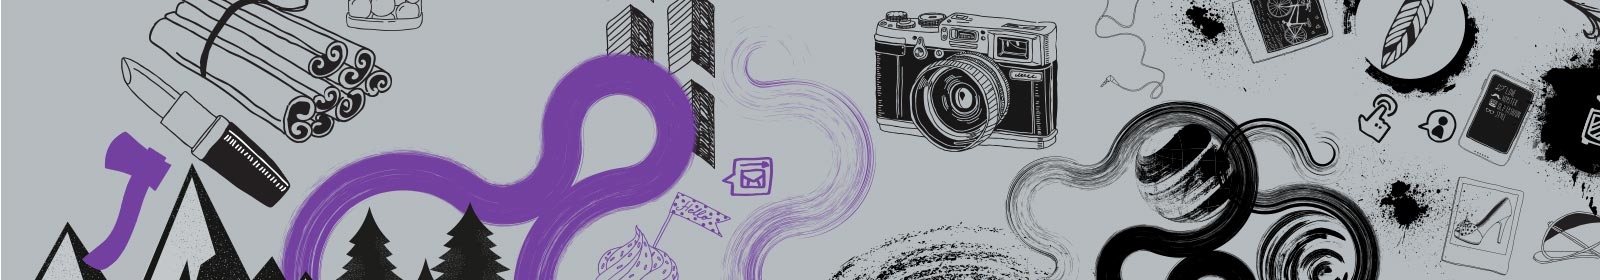 illustration with grey background and purple and black drawings